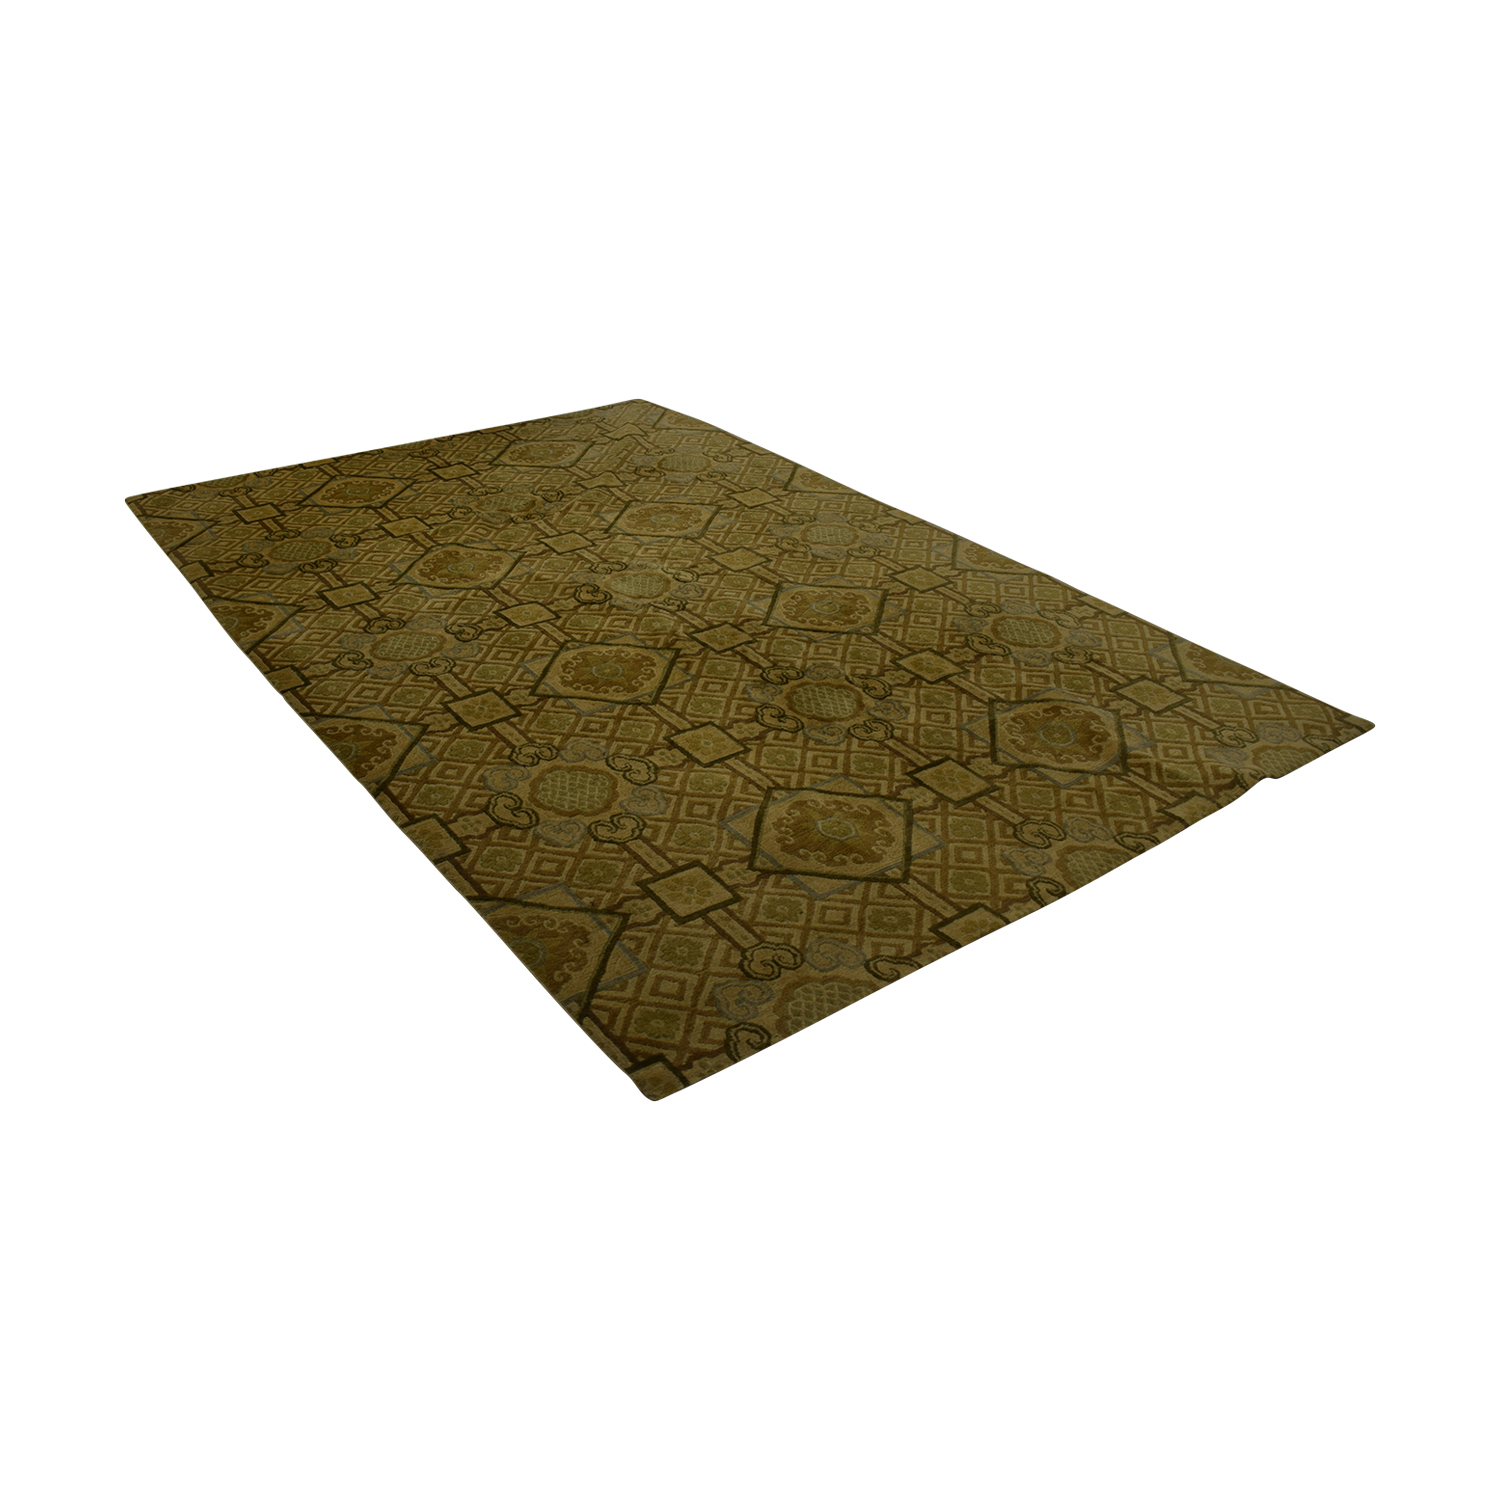 buy Noreen Seabrook Market Bronze Multi-Colored Rug Noreen Seabrook Market Decor